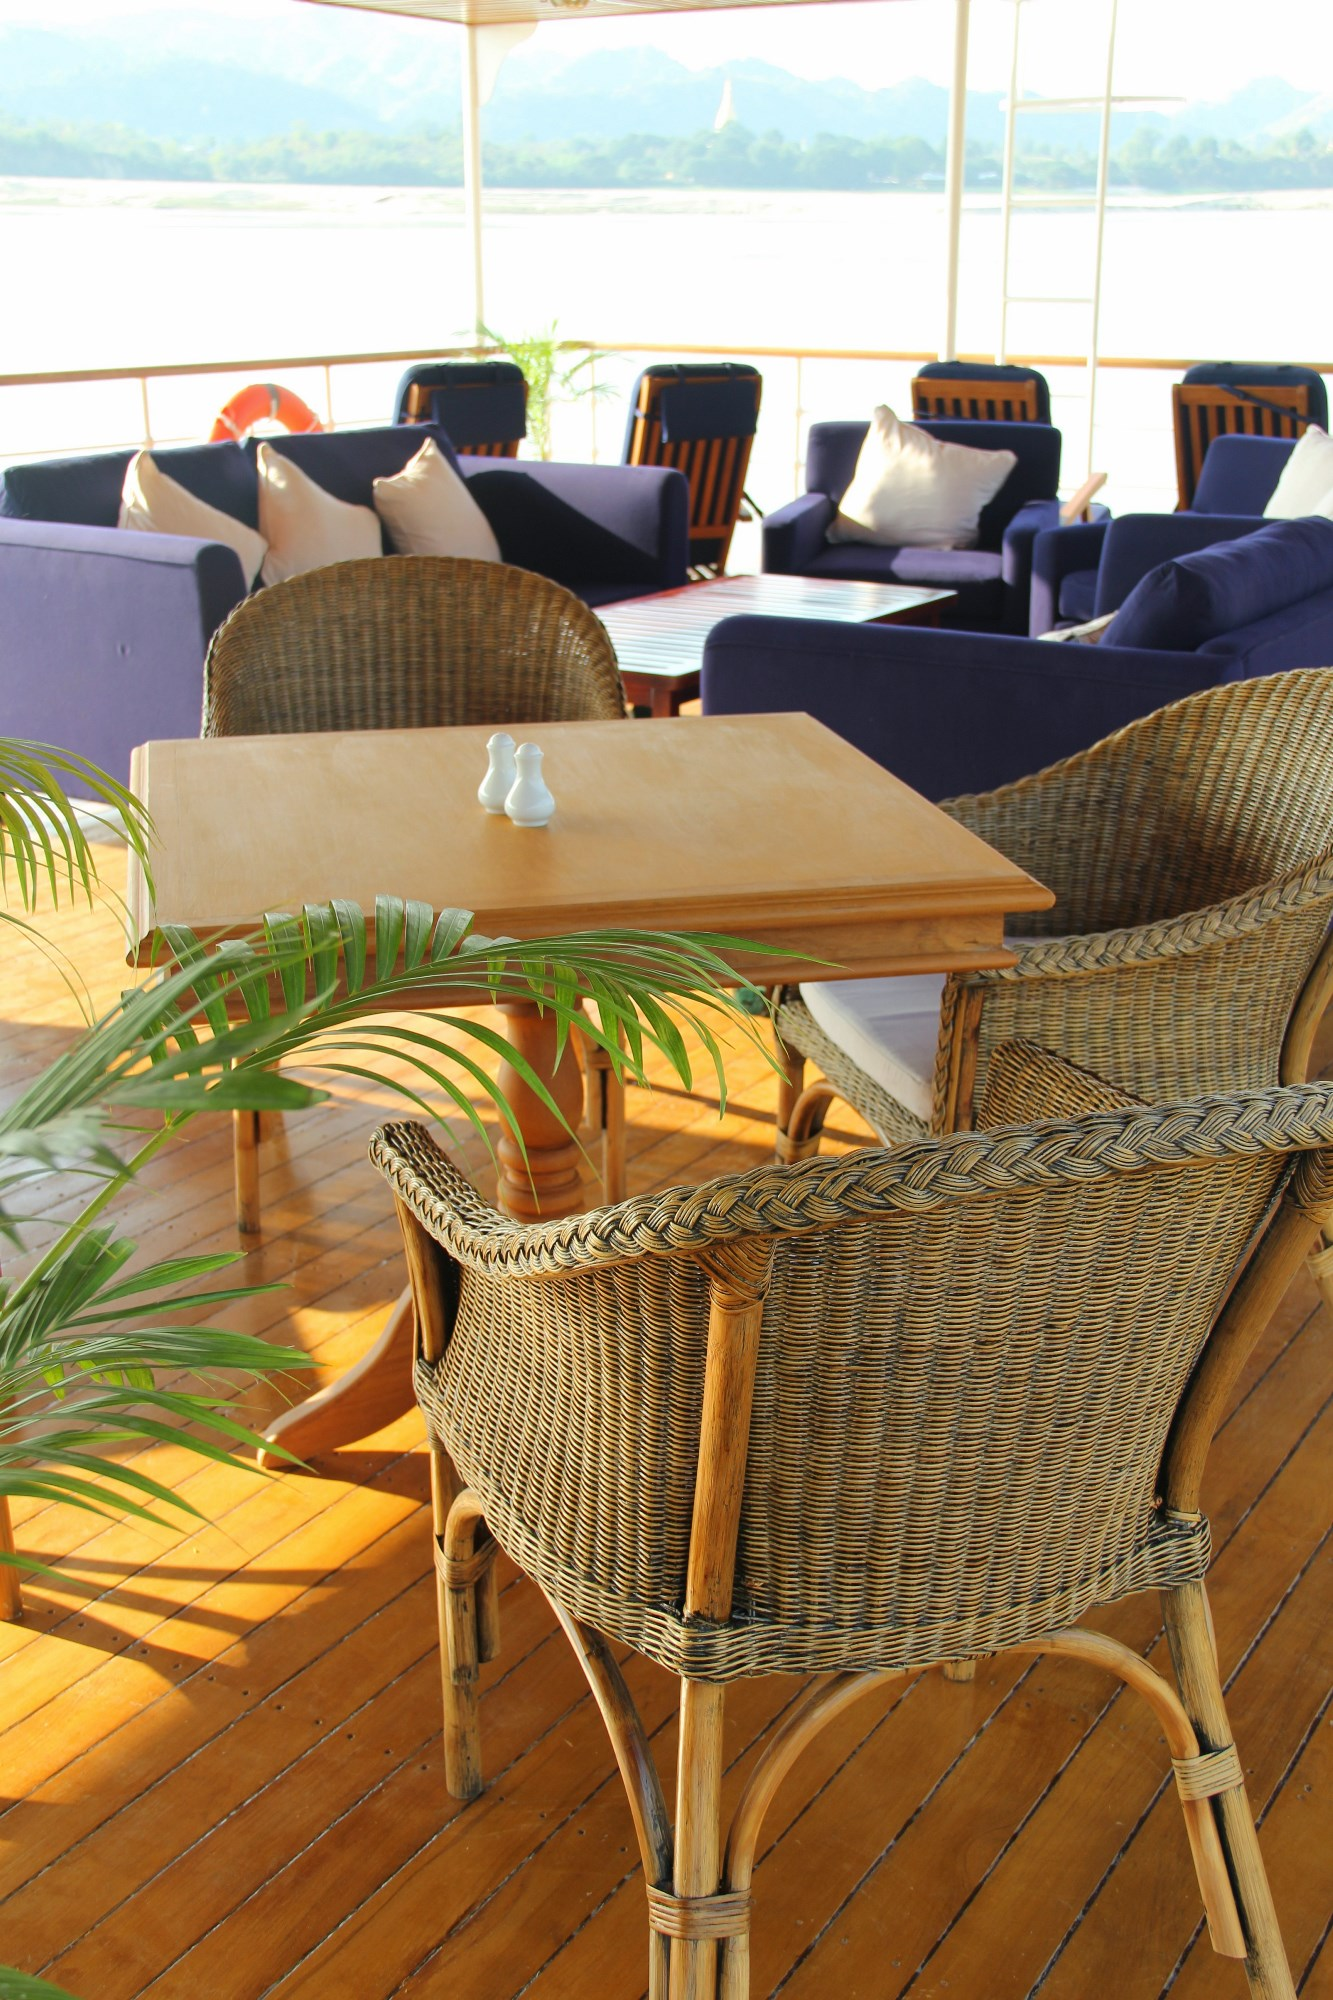 Deck Image Gallery Sail Yacht LEO Deck Chairs Deck